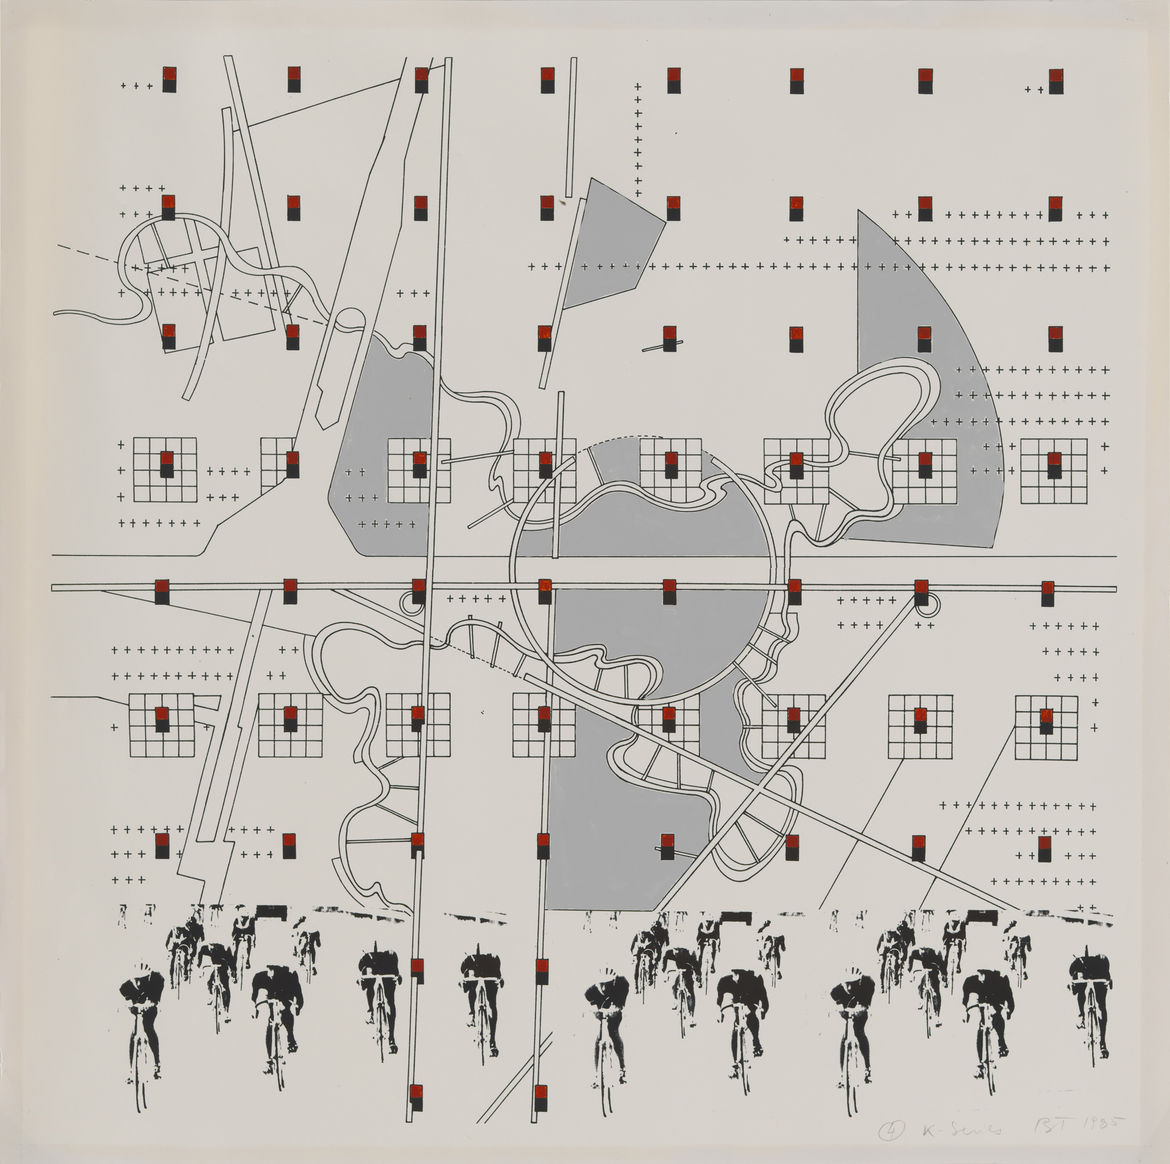 Bernard Tschumi drawing #4 K Series with cyclists